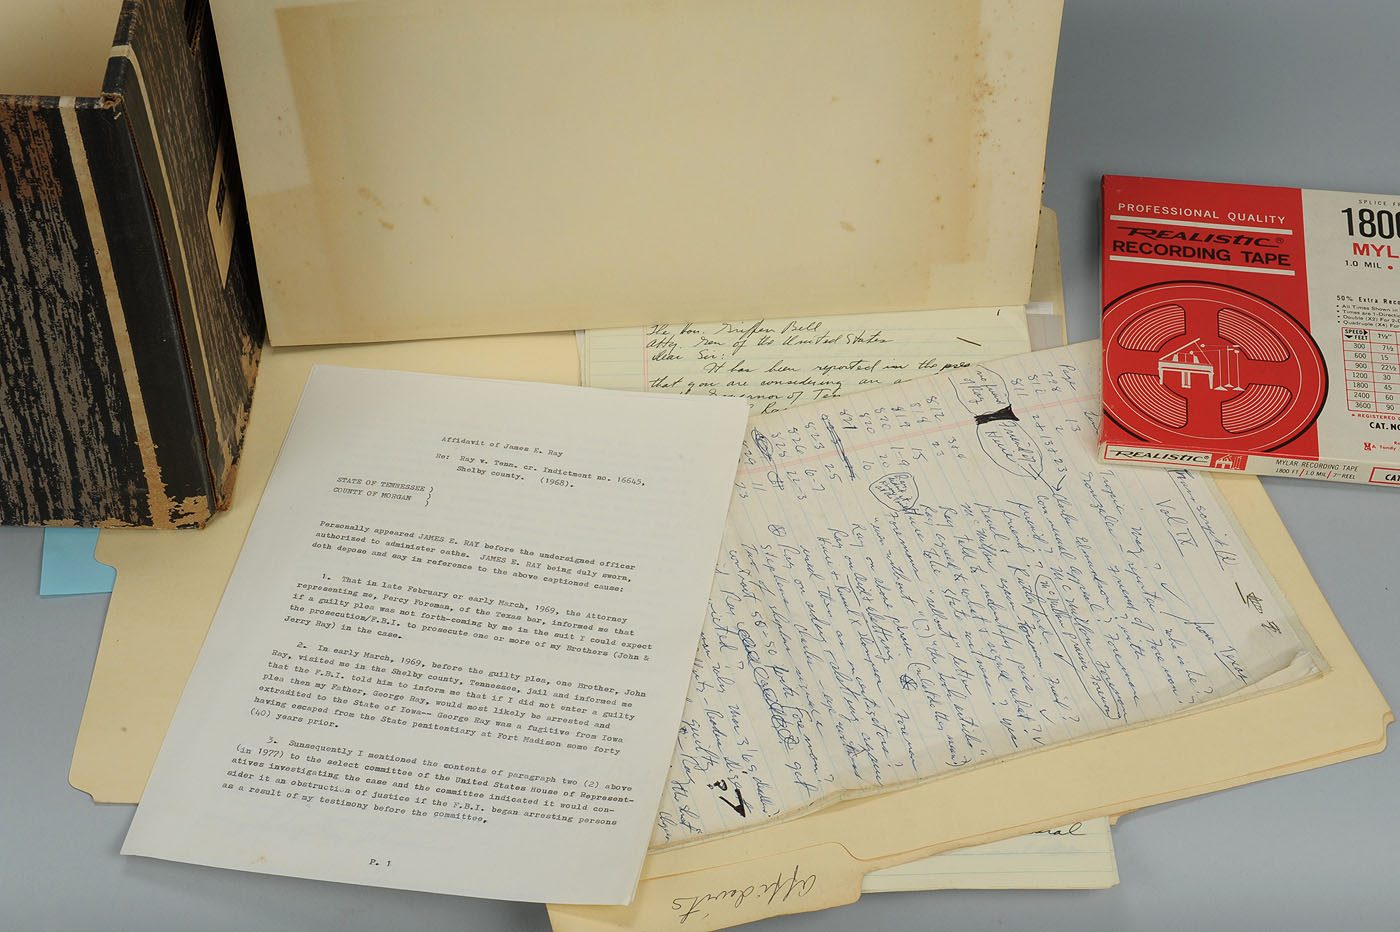 Lot 664: James Earl Ray / Jack Kershaw Archive, MLK Assassi